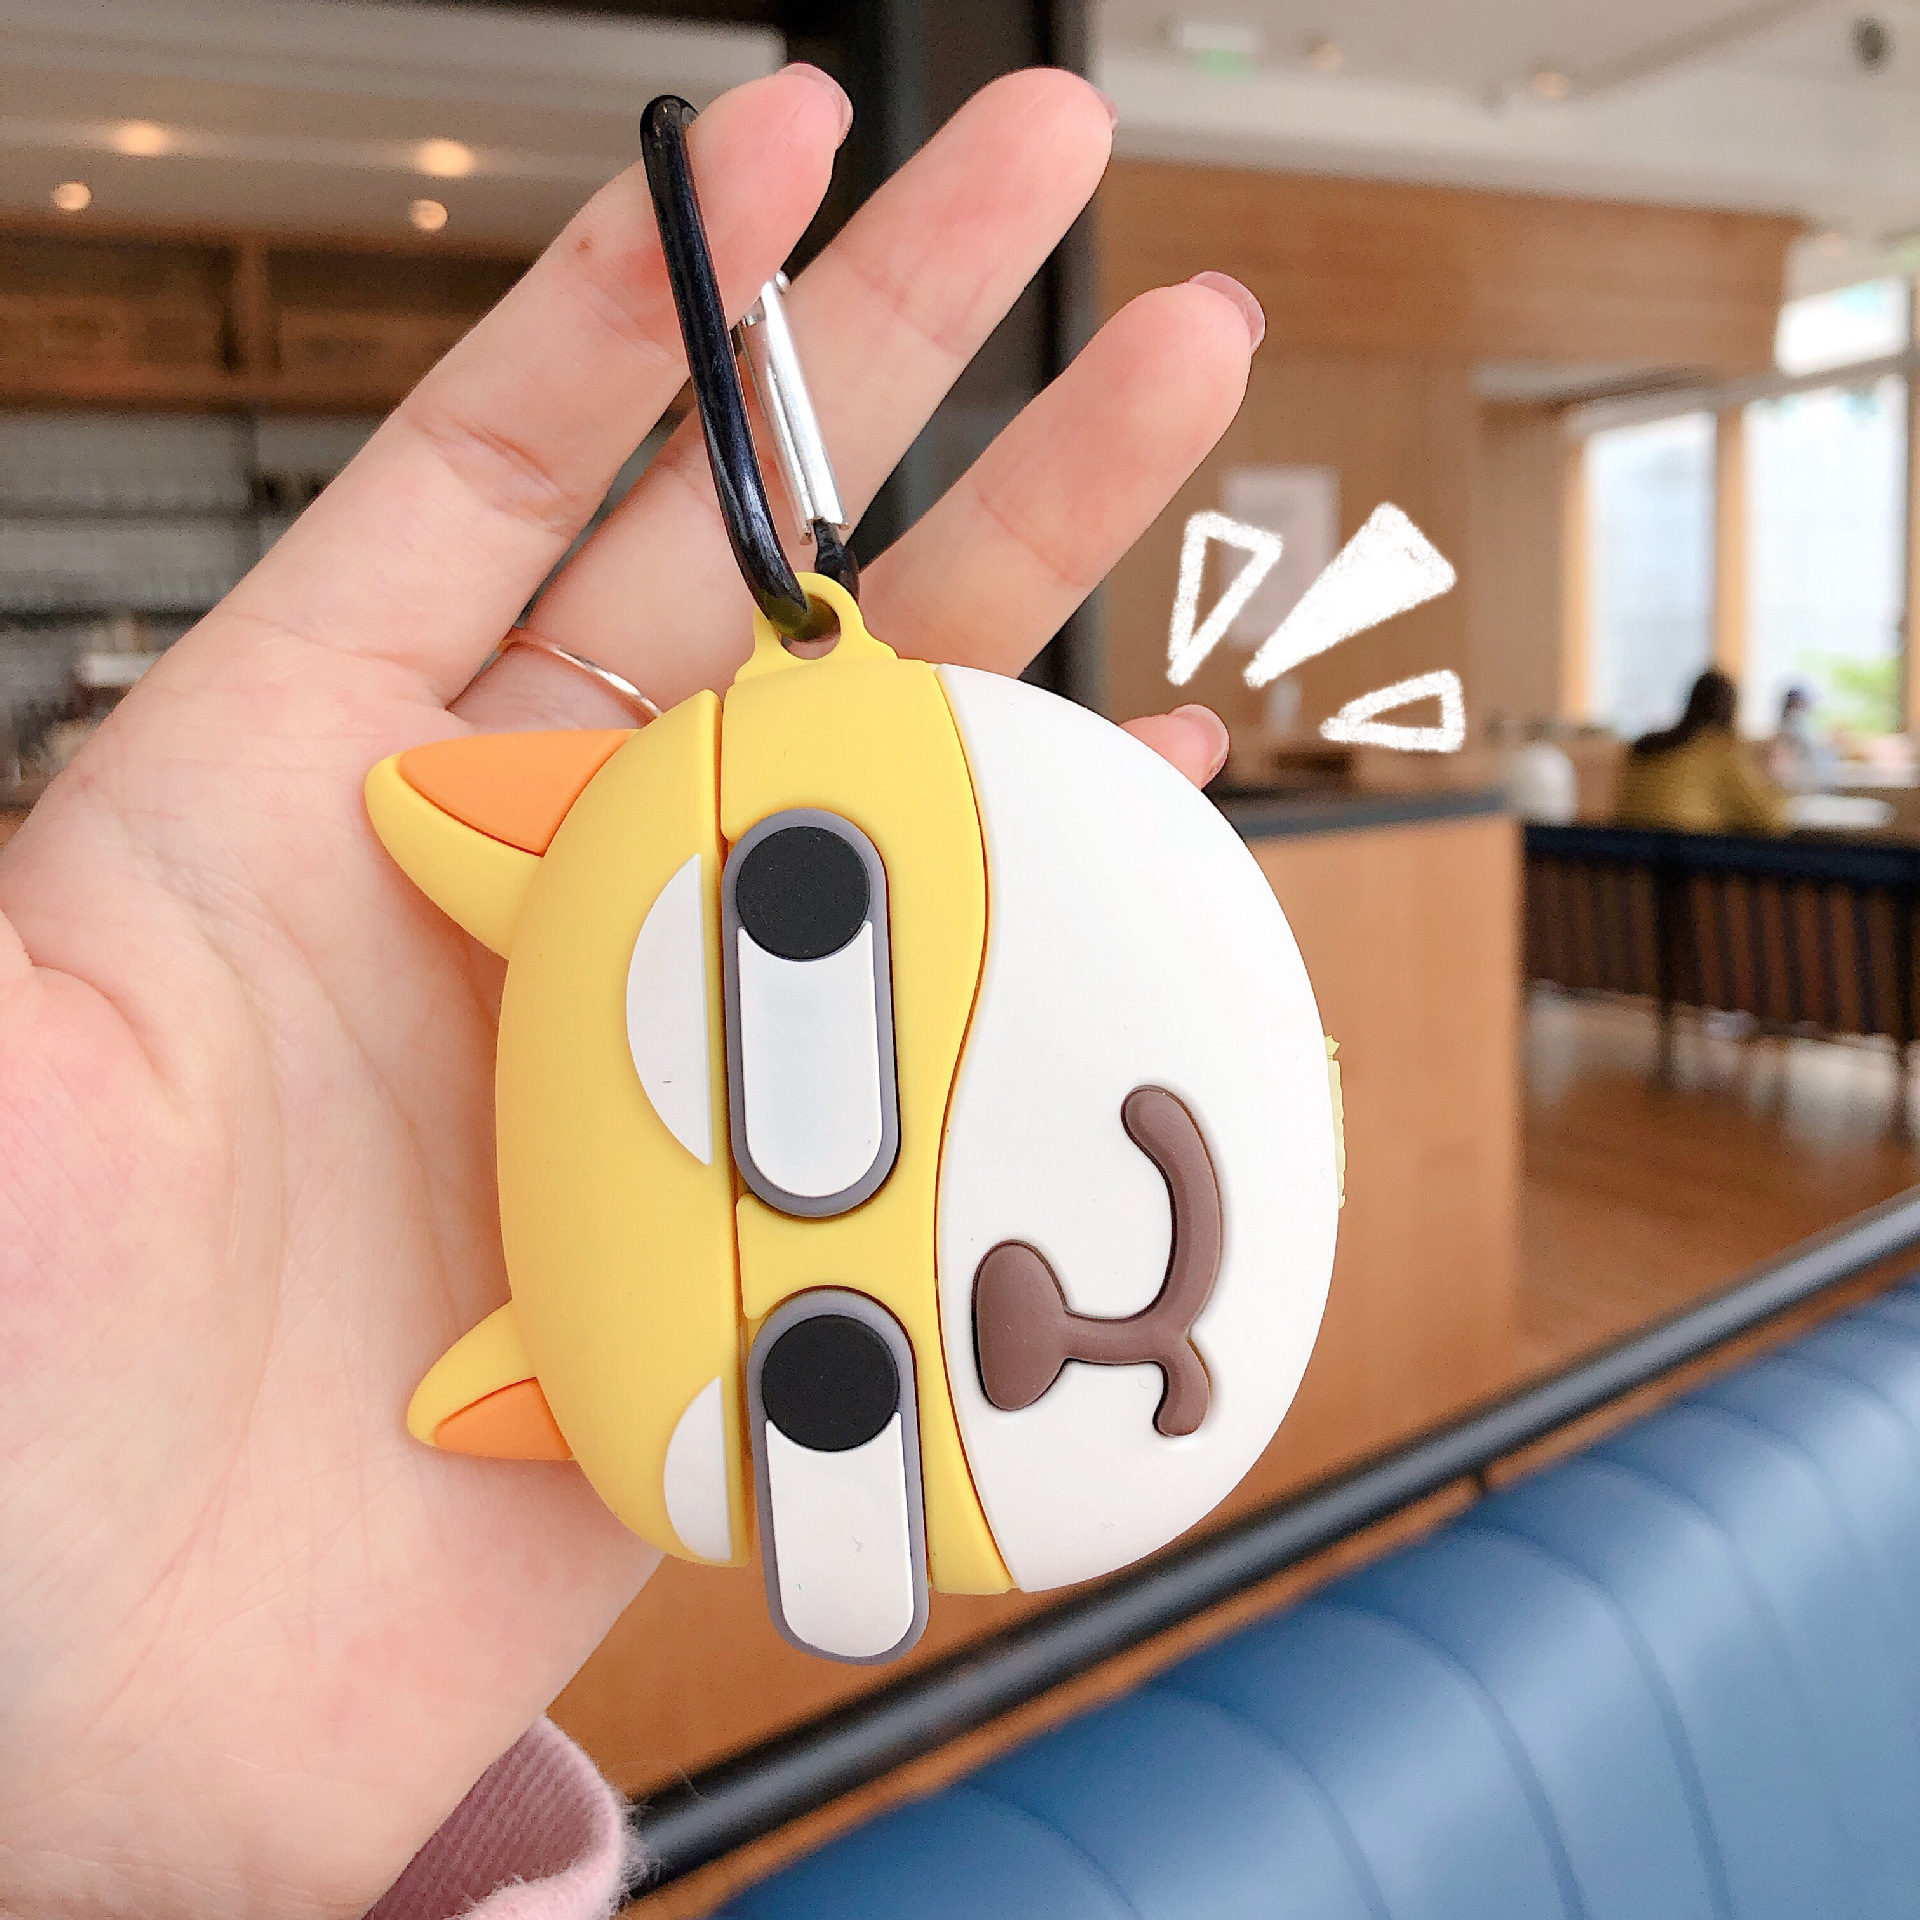 Cartoon Shiba Inu Bluetooth Earphone Case for AirPods Pro Silicone Soft Headphones Cover for Airpods 2 3 Cute Protective Case